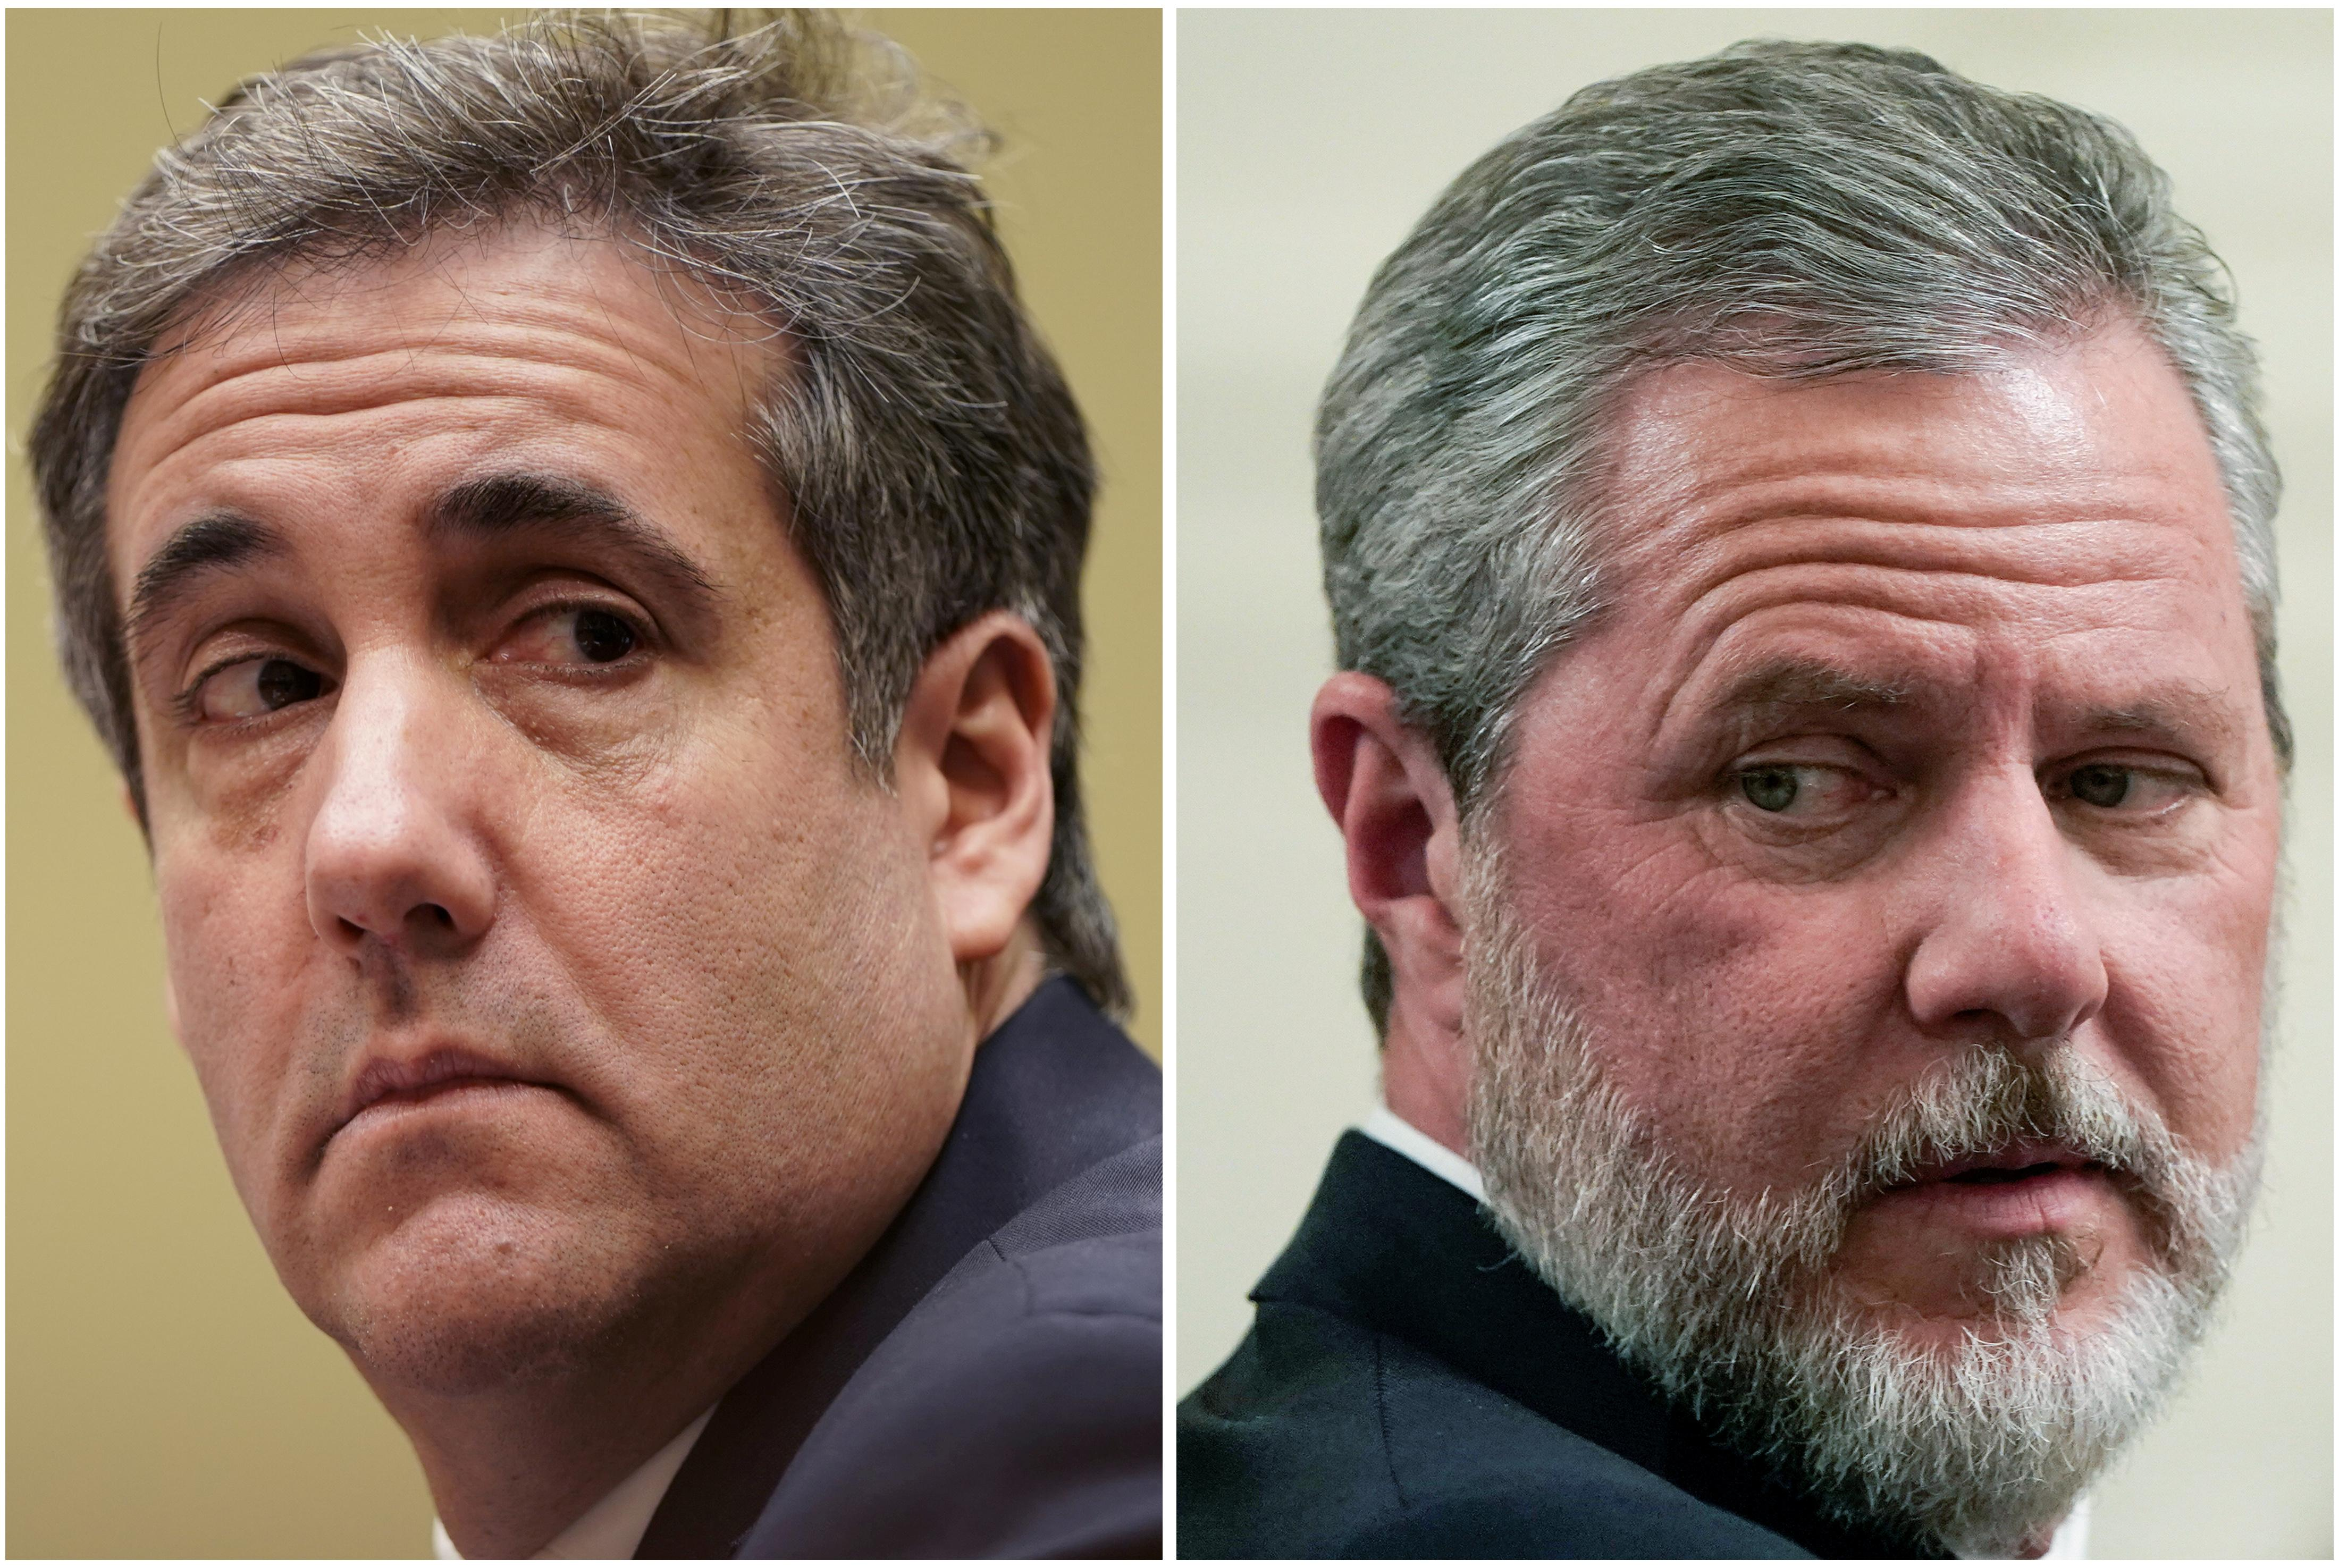 Exclusive: Trump fixer Cohen says he helped Falwell handle racy photos - Reuters 4